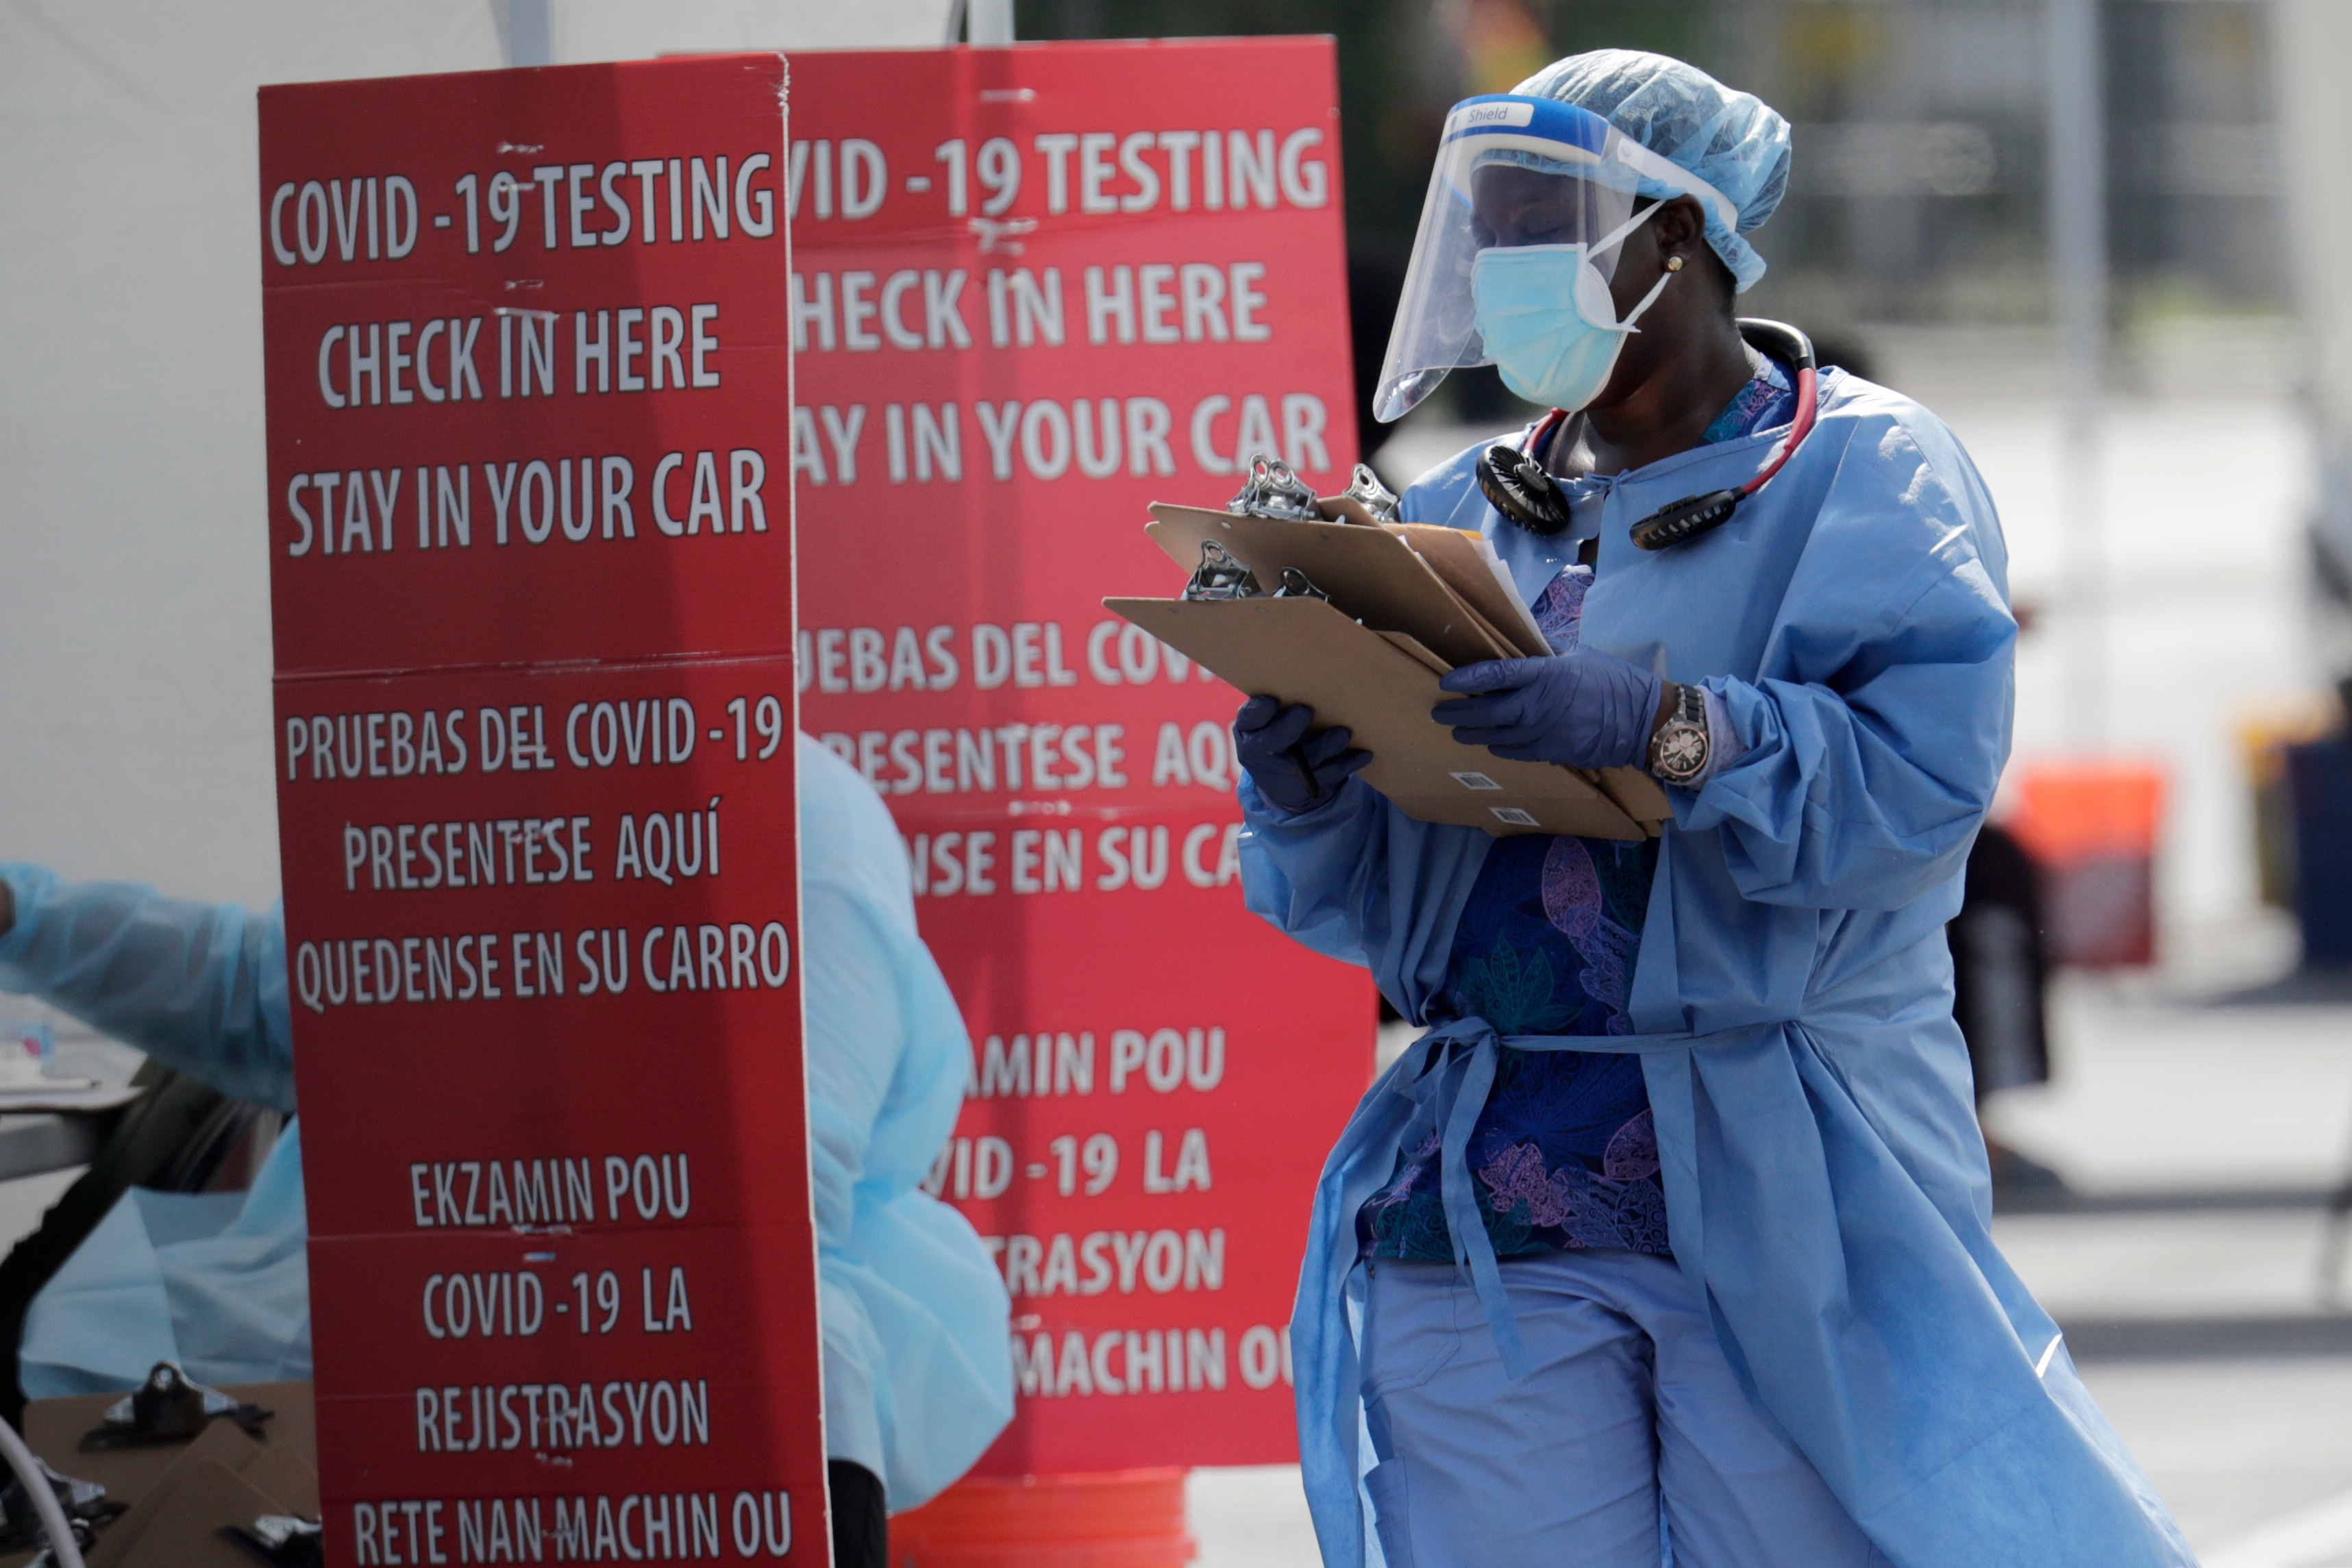 US Leads World in Coronavirus Cases, Deaths | Voice of America - English